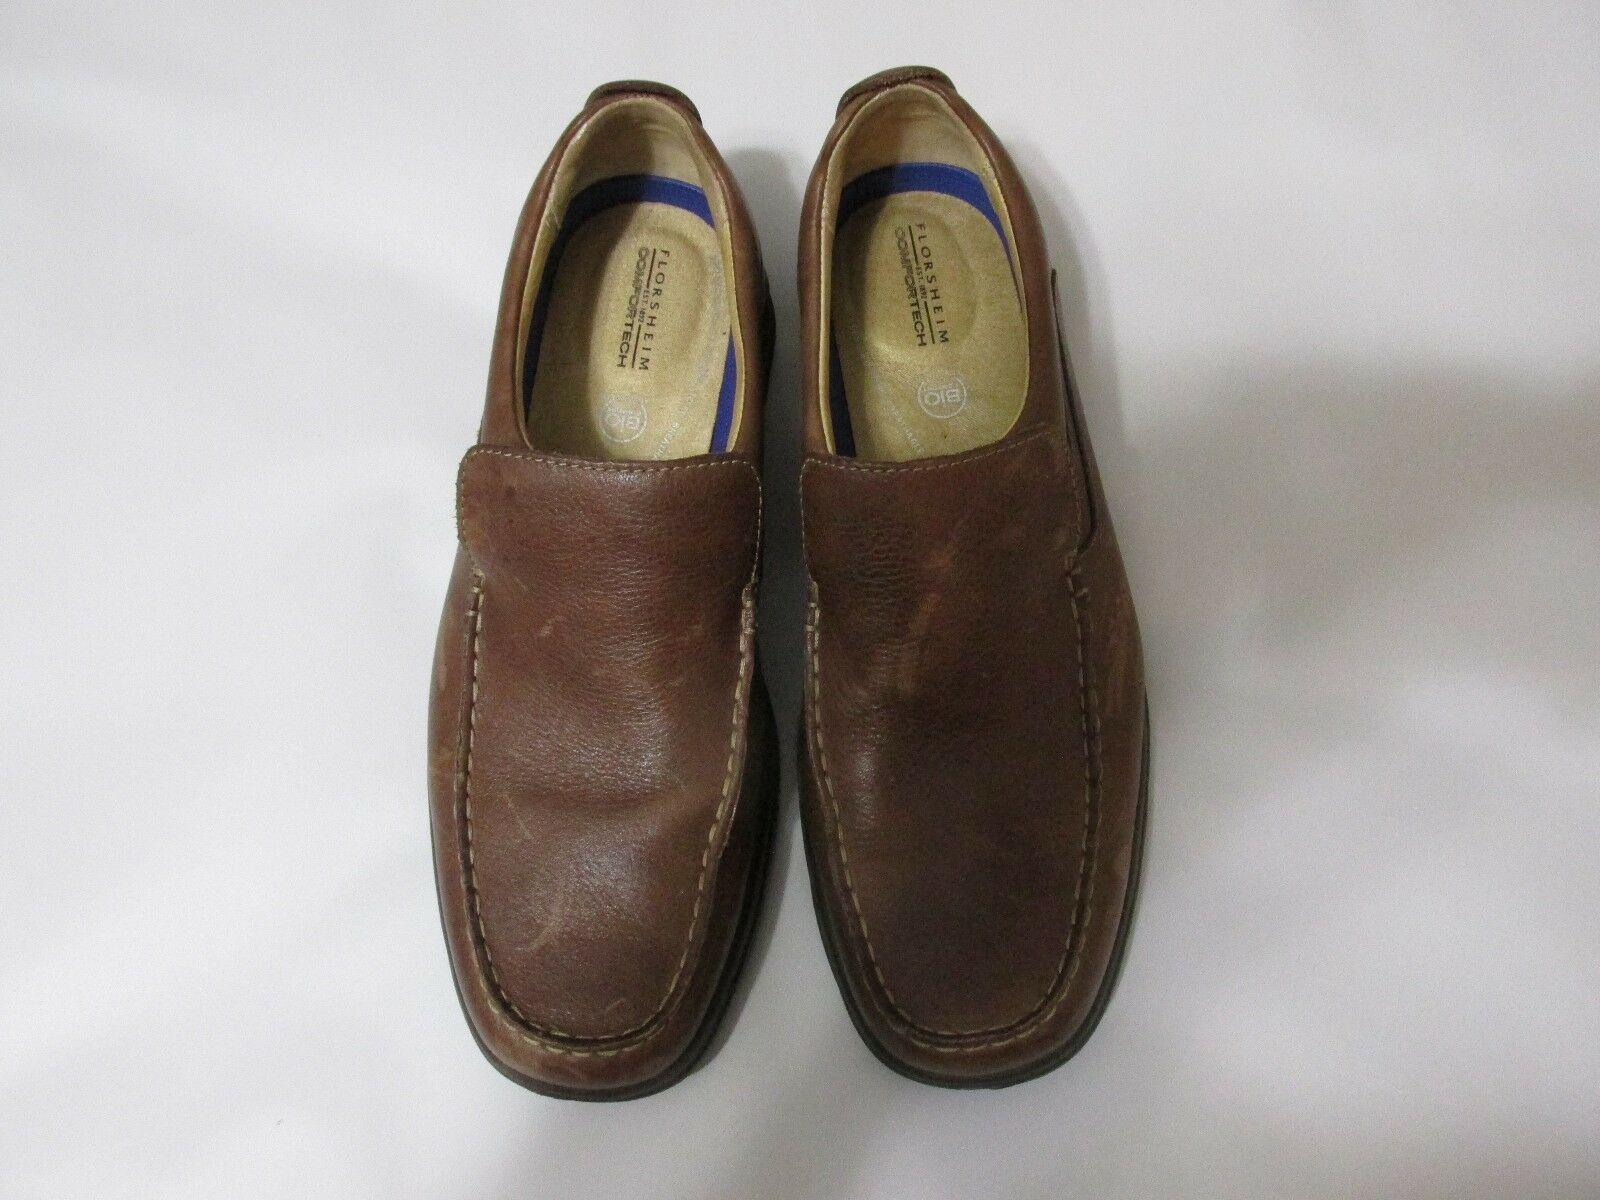 Florsheim Comfortech  Bio Comfort slip on brown leather loafers Men's  Size 9.5D